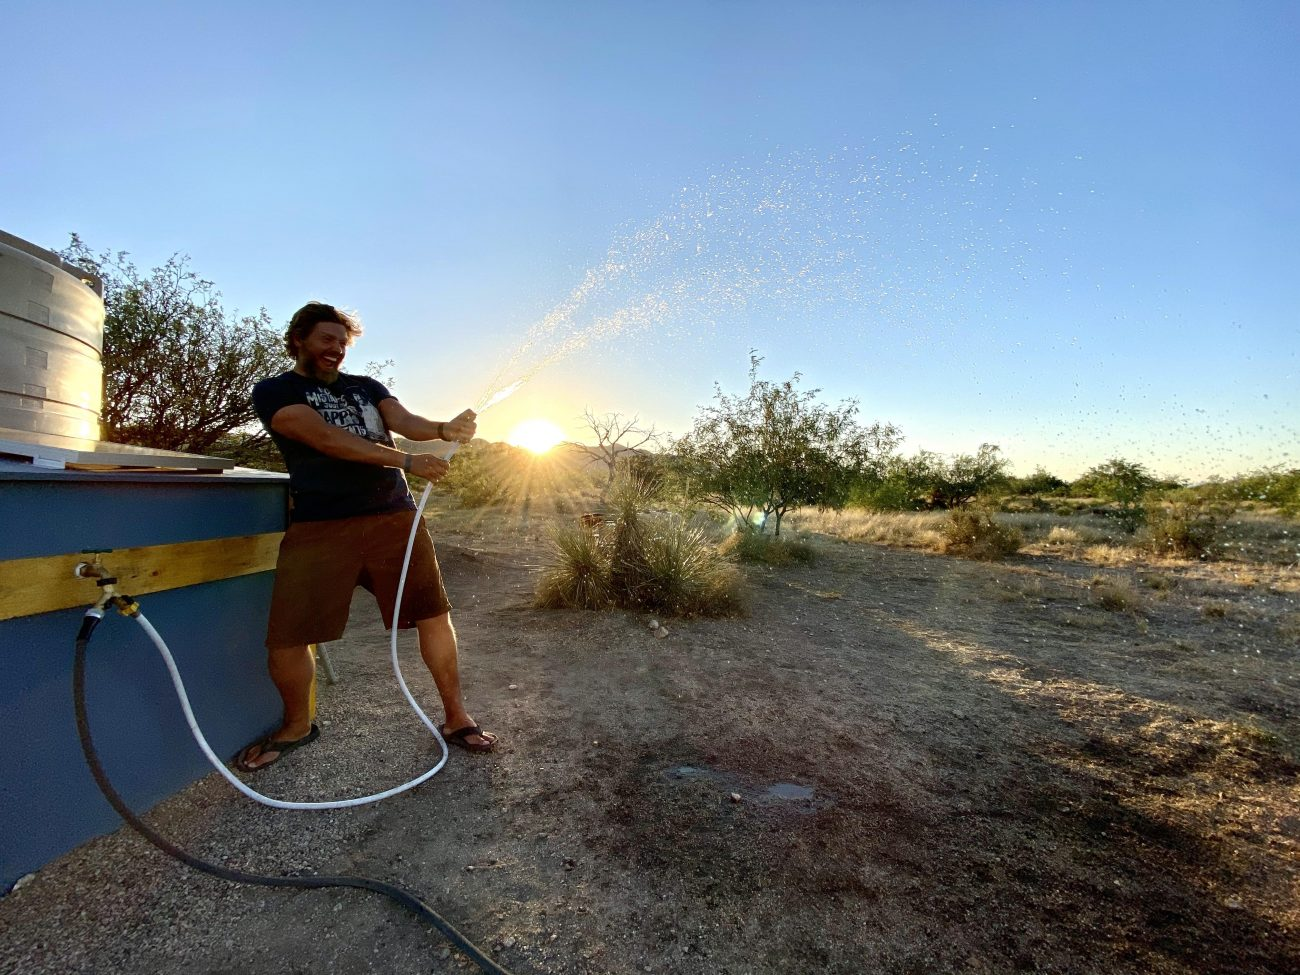 Spraying pressurized water off-grid at sunset.